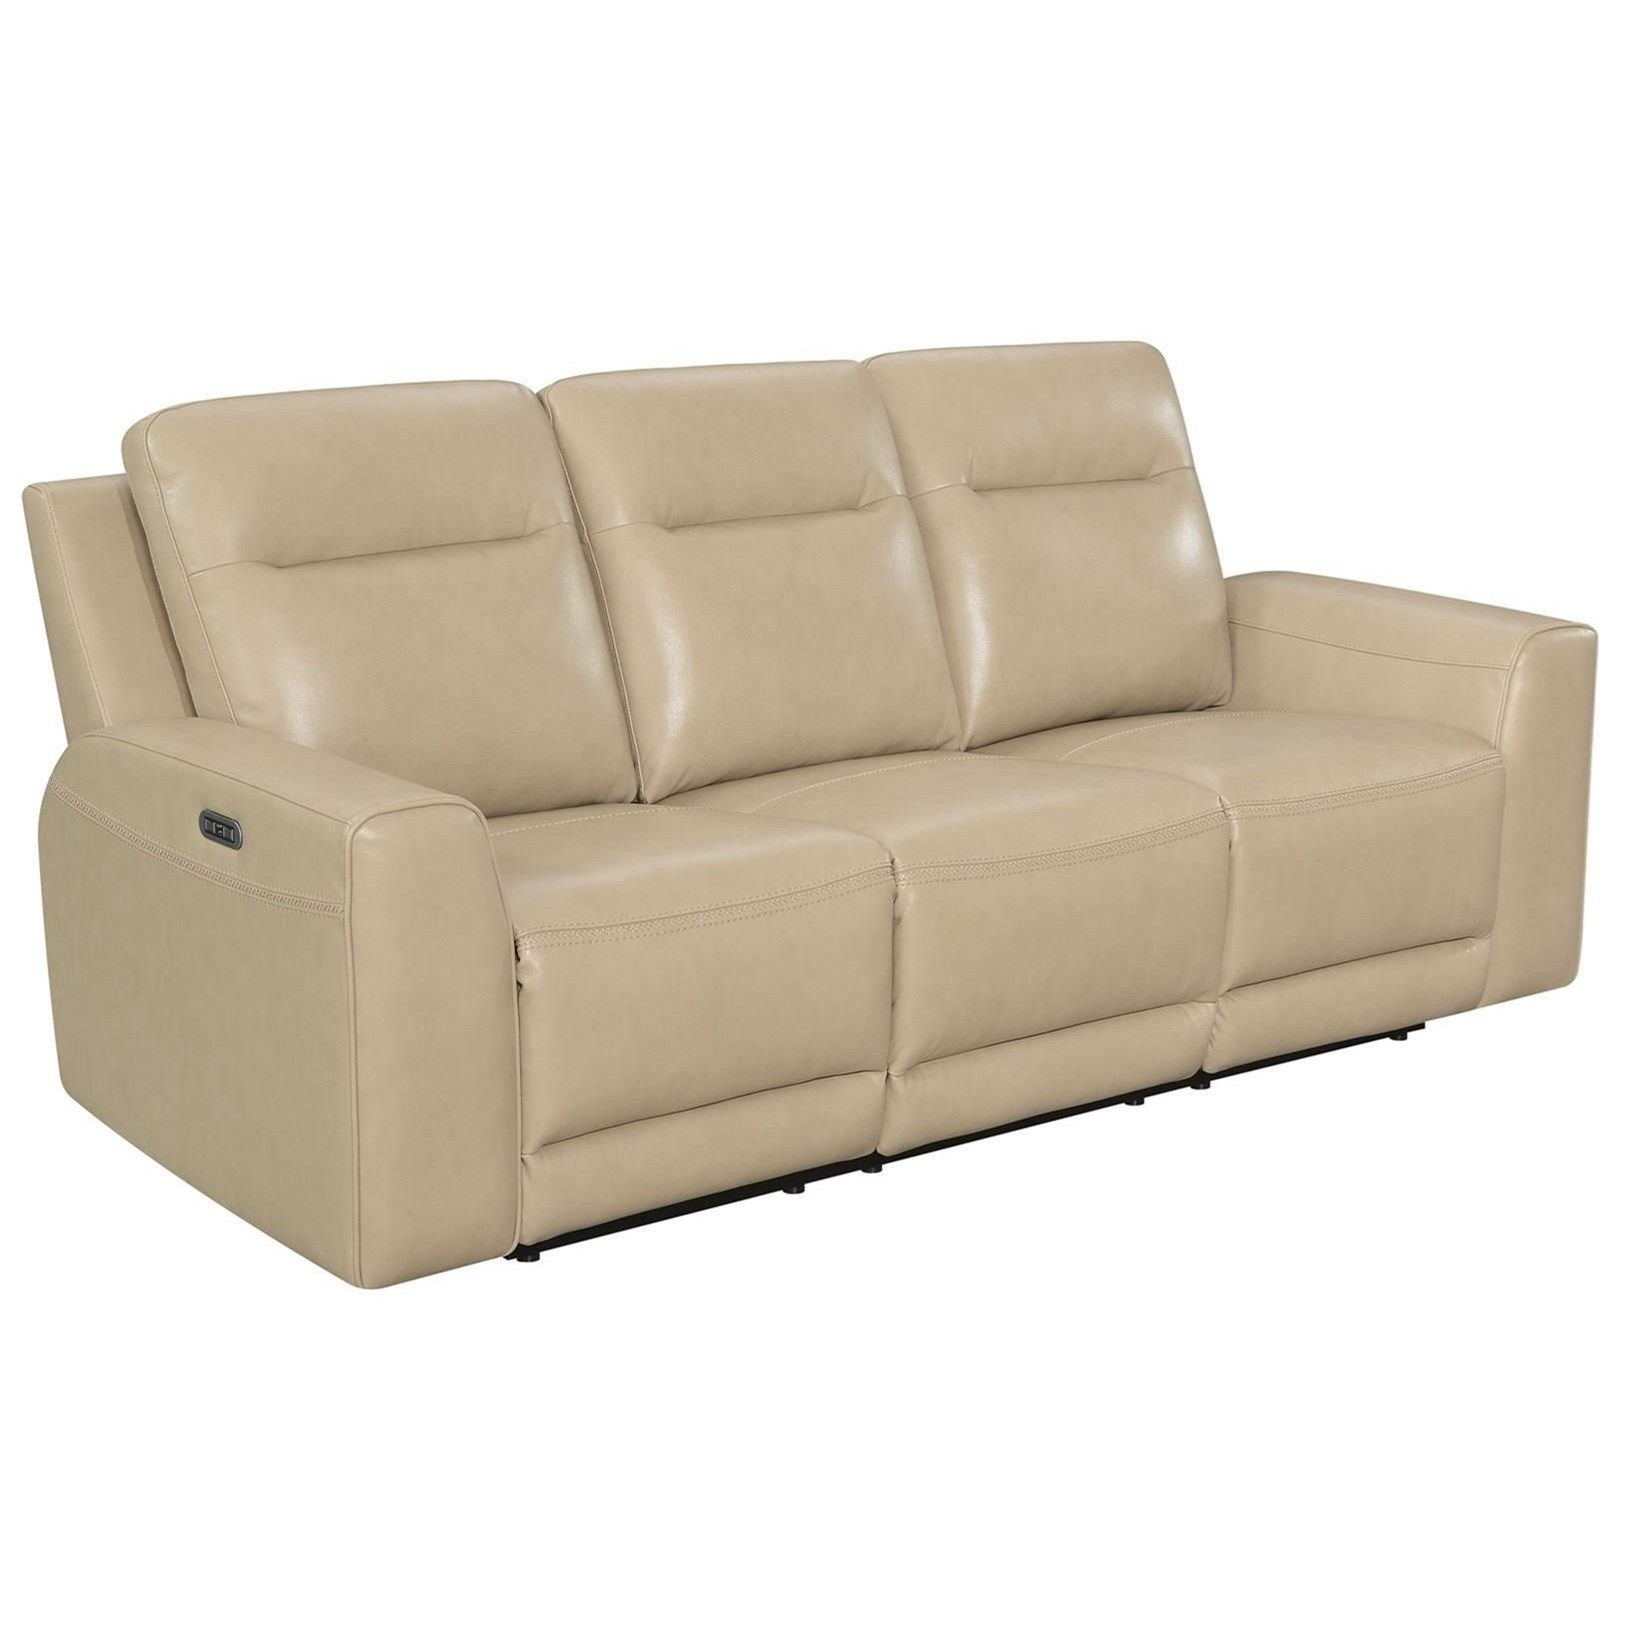 doncella dual power recliner sofa